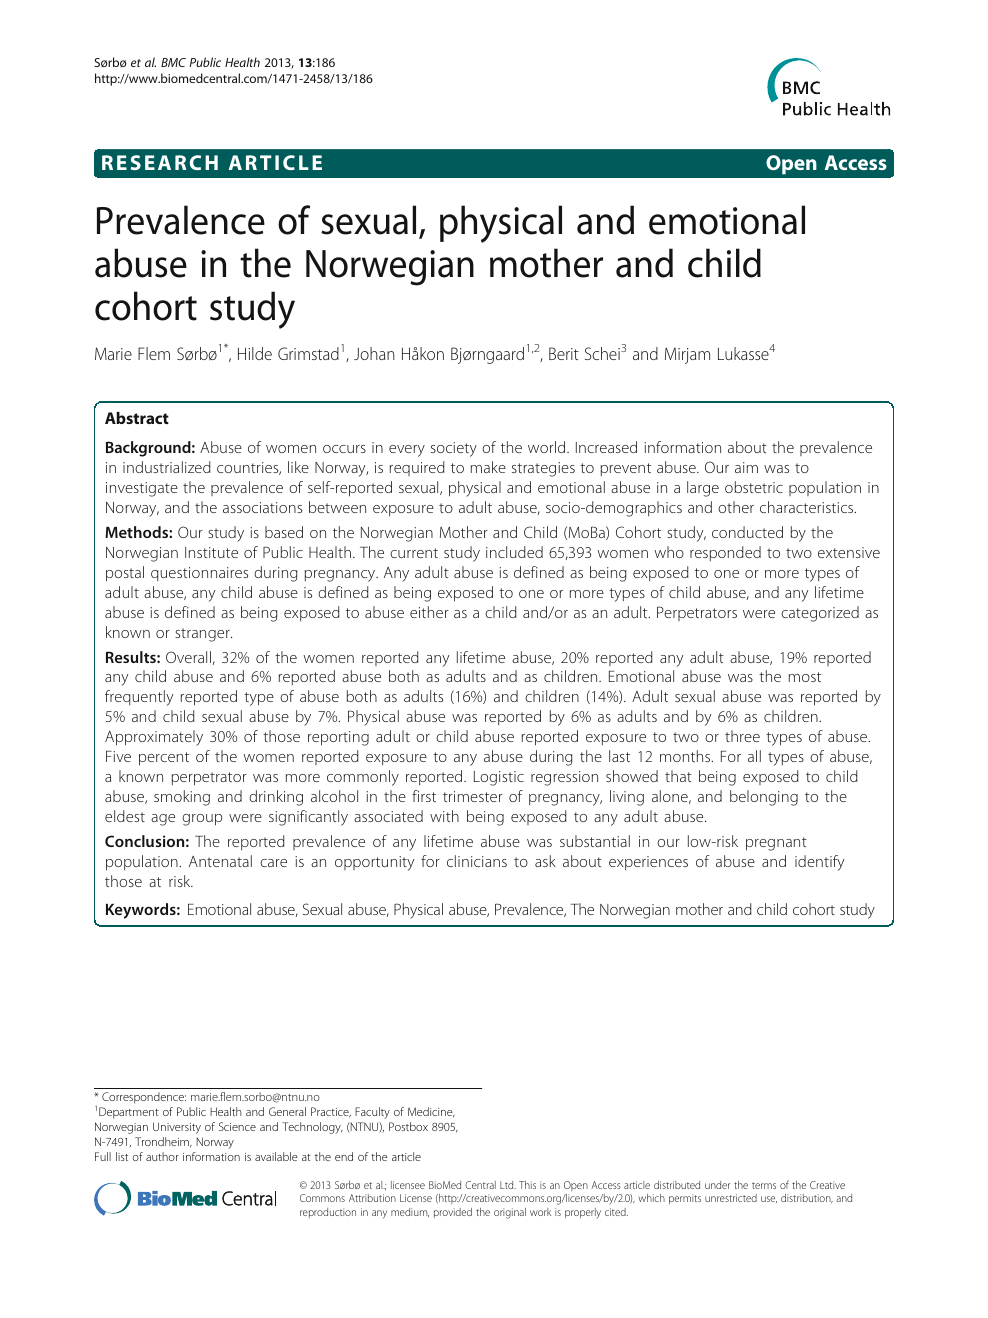 Prevalence Of Sexual Physical And Emotional Abuse In The